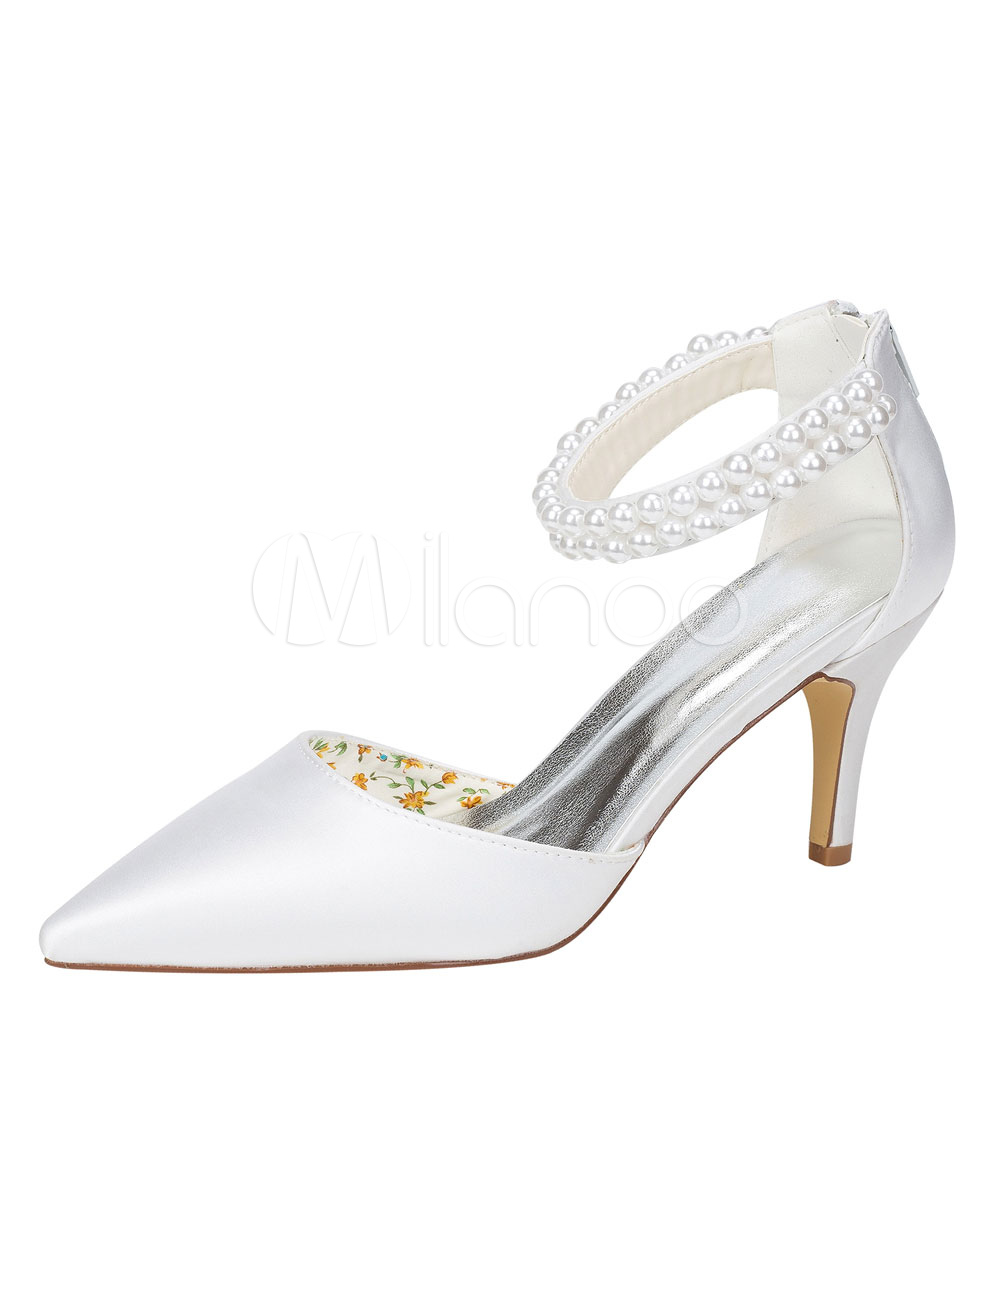 White Bridal Shoes Silk Stiletto Heel Pointed Toe Pearl Detail Ankle Strap Wedding Shoes